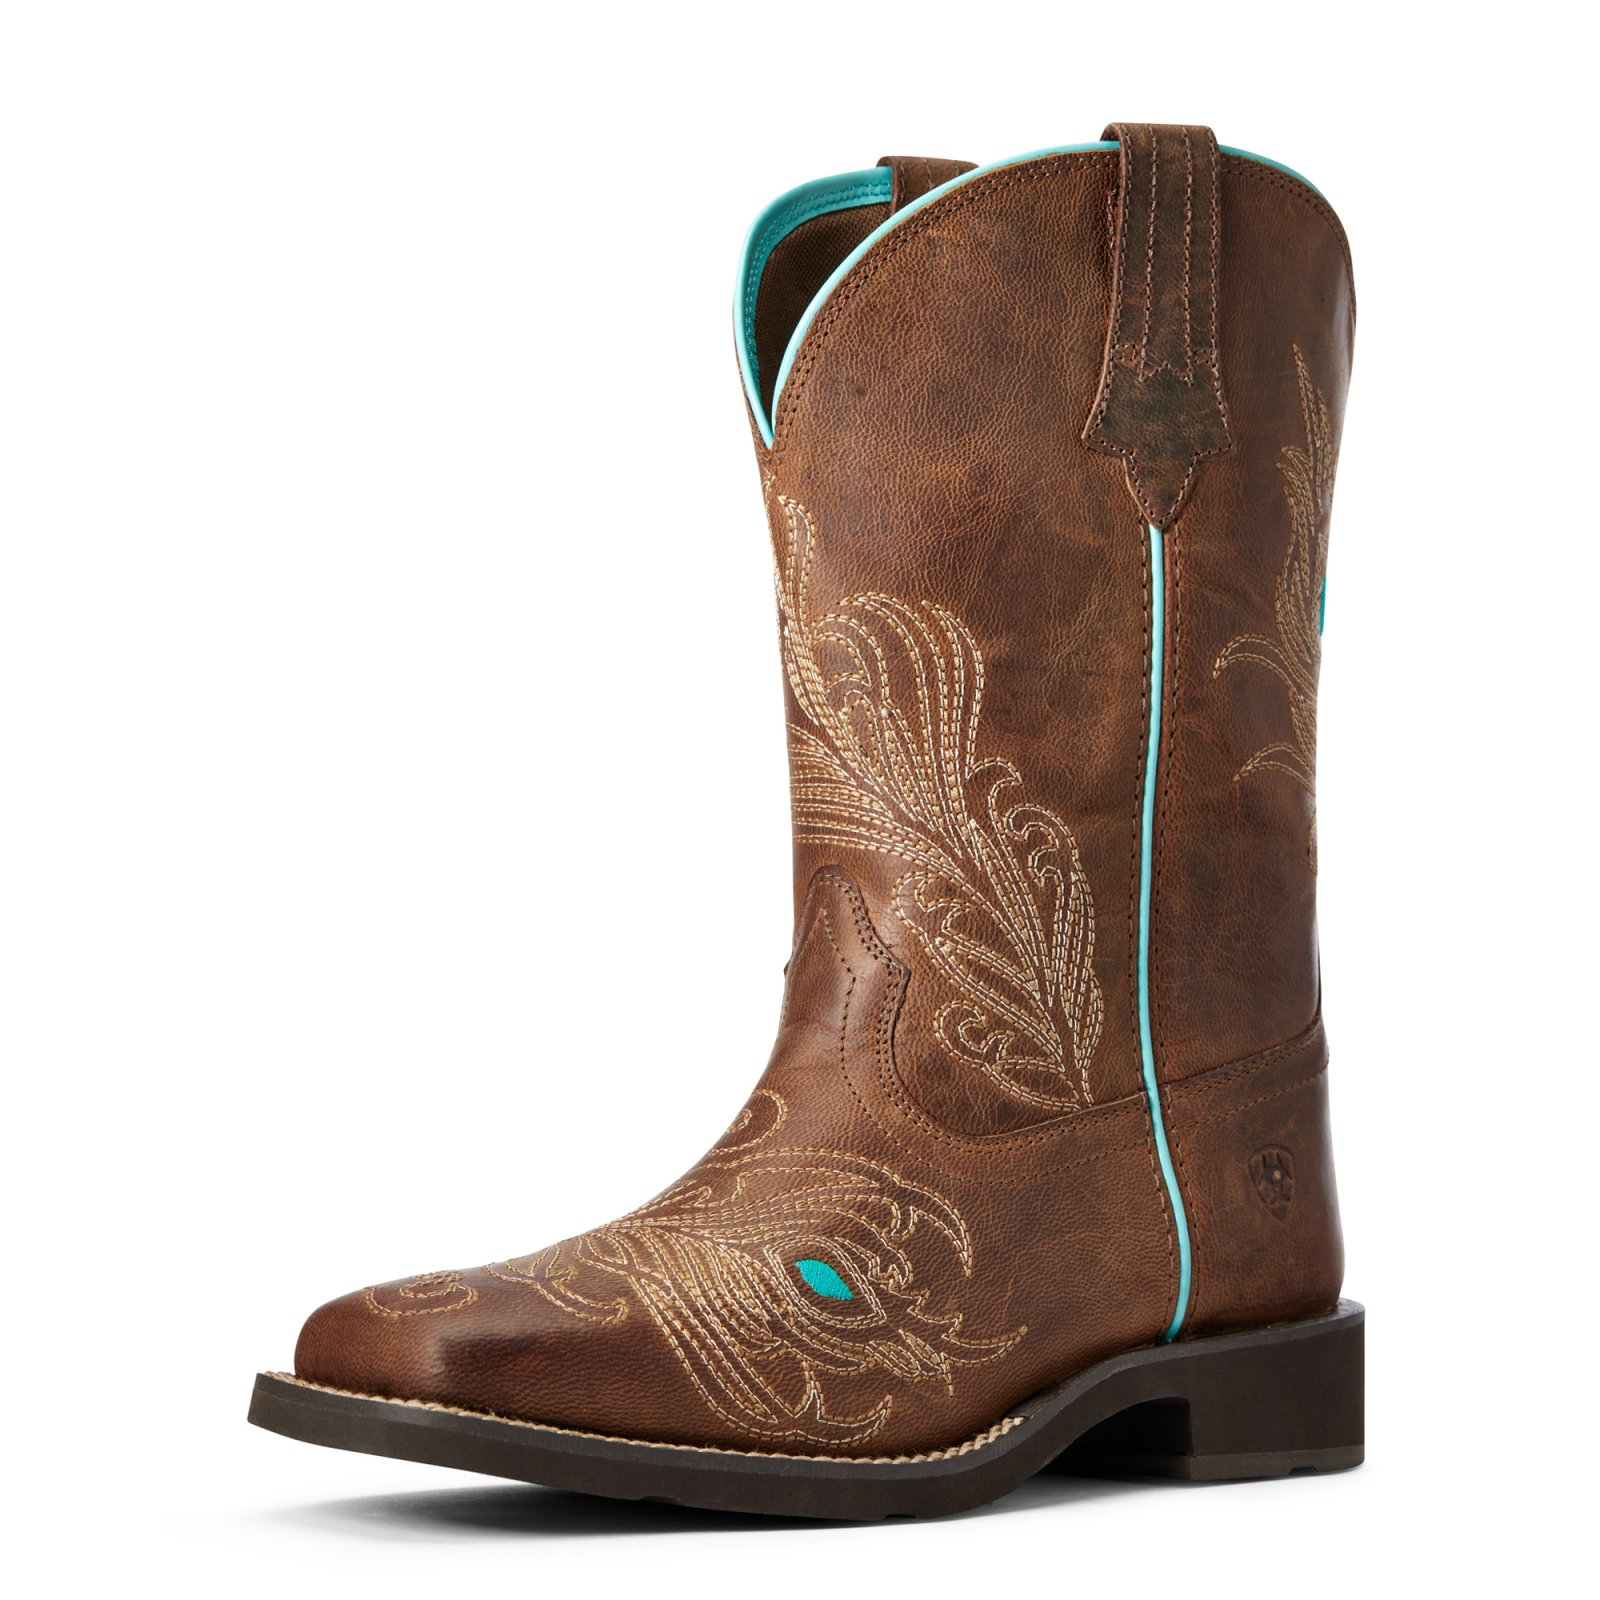 Bright Eyes II from Ariat